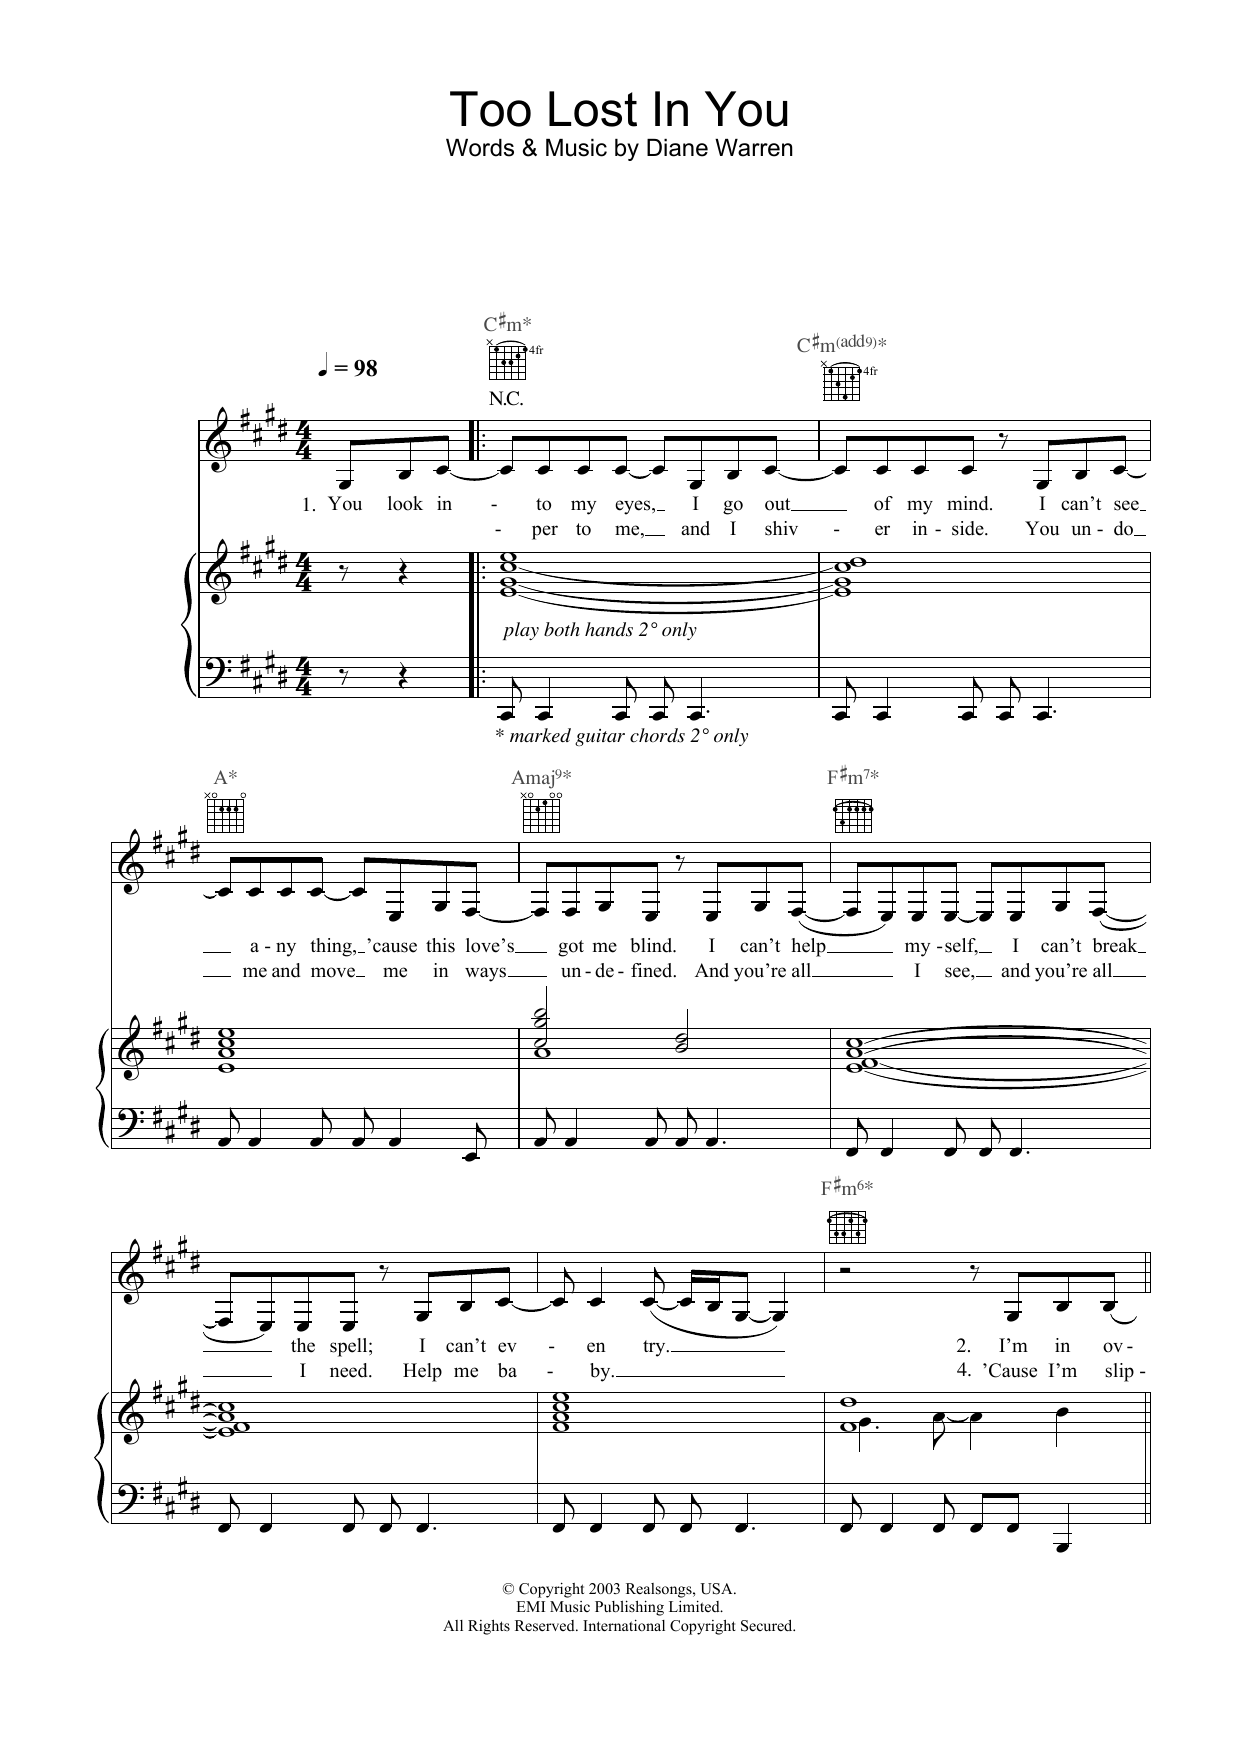 Sugababes Too Lost In You sheet music preview music notes and score for Piano, Vocal & Guitar including 6 page(s)